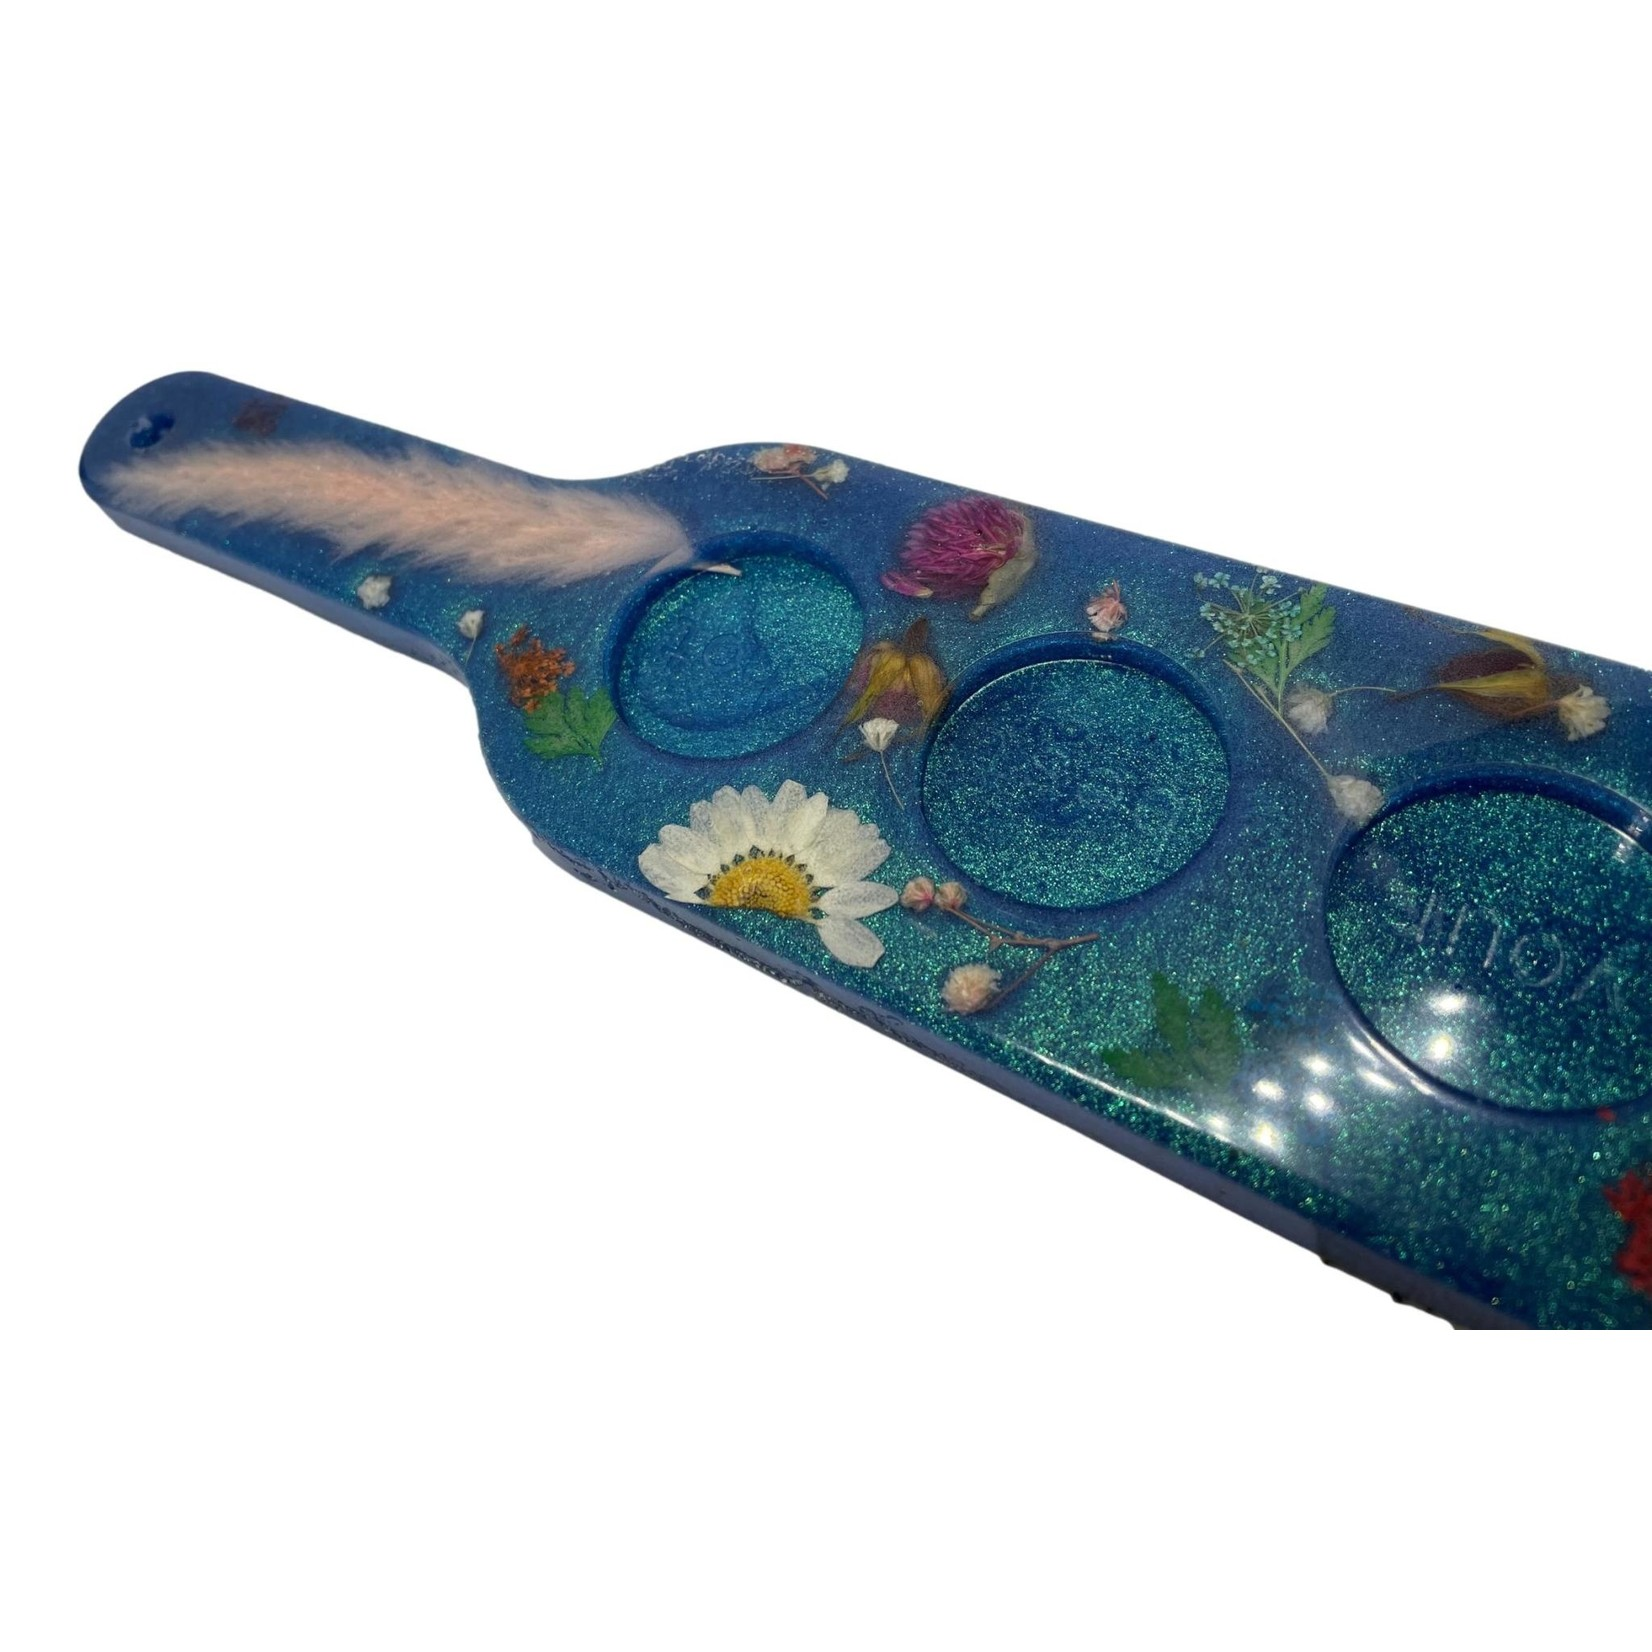 East Coast Sirens Blue Floral Flite Tray with Glasses